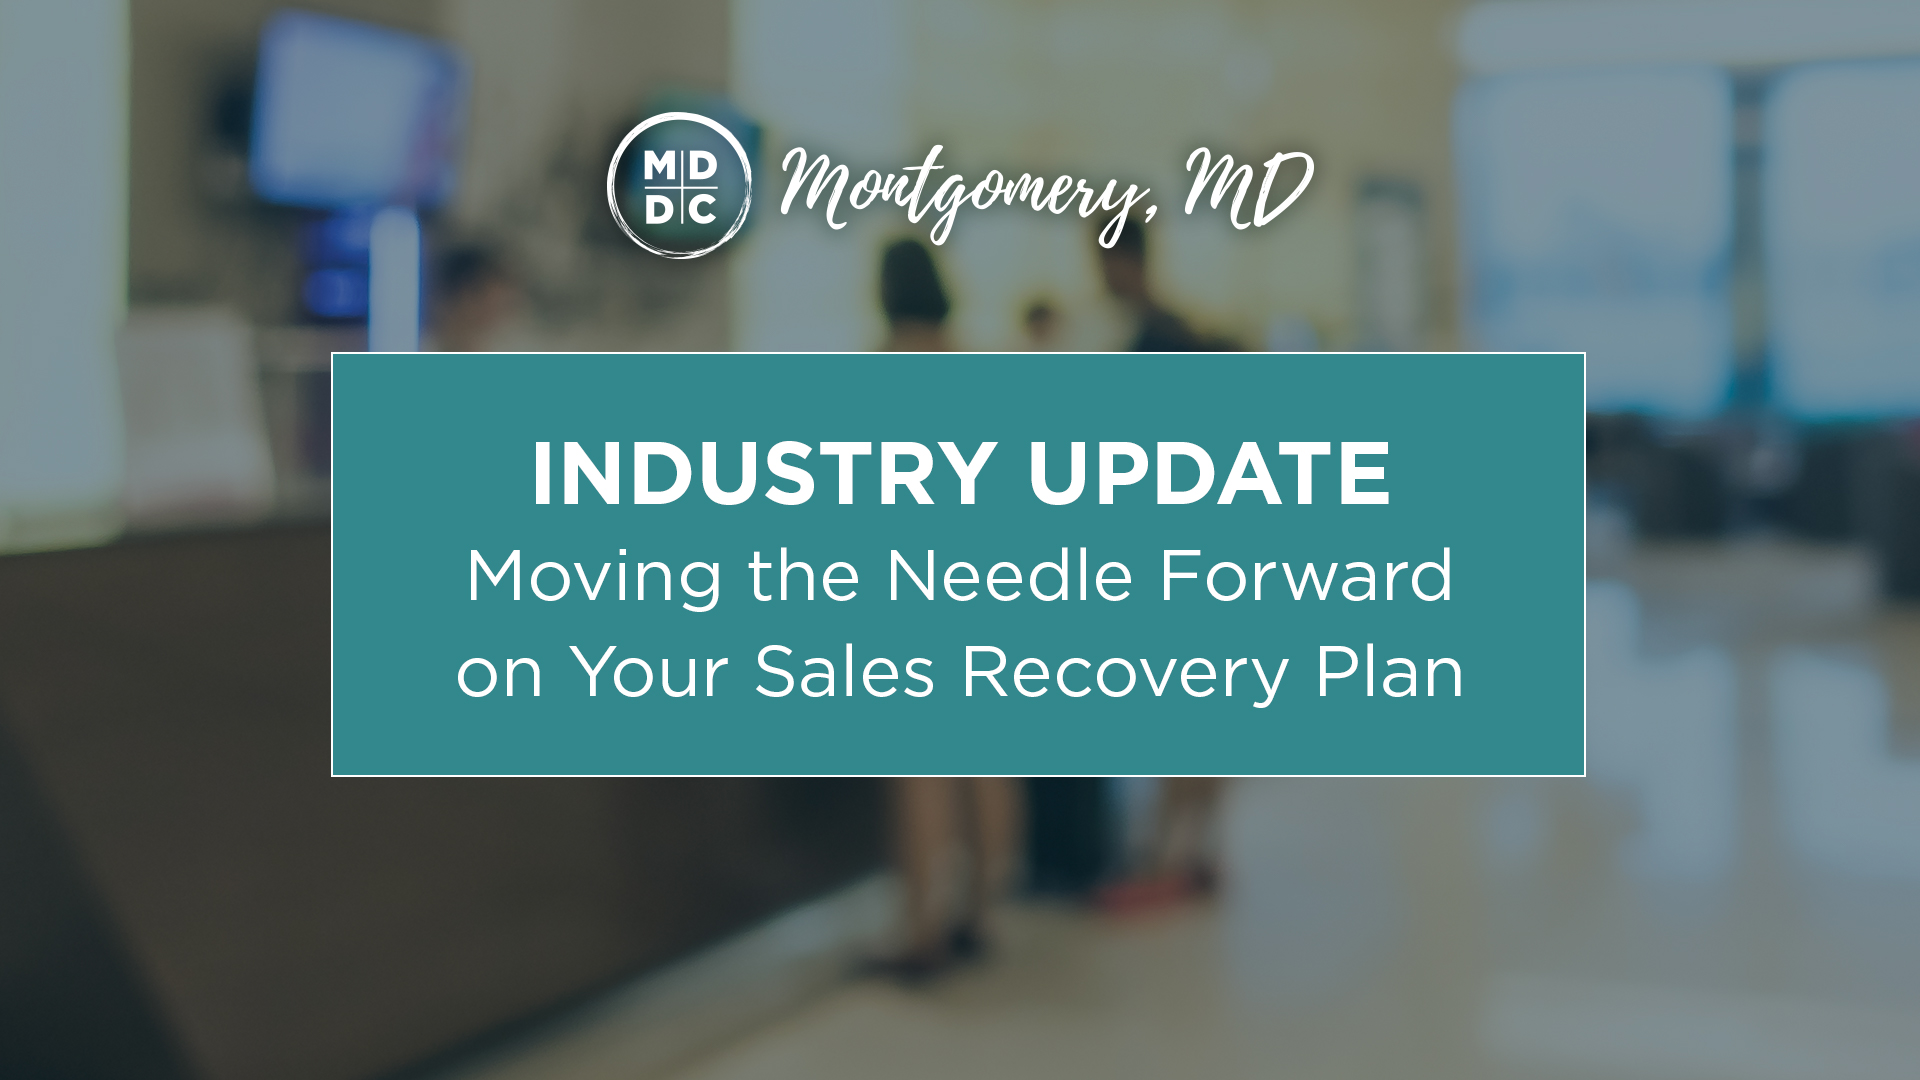 Moving the Needle Forward on Your Sales Recovery Plan